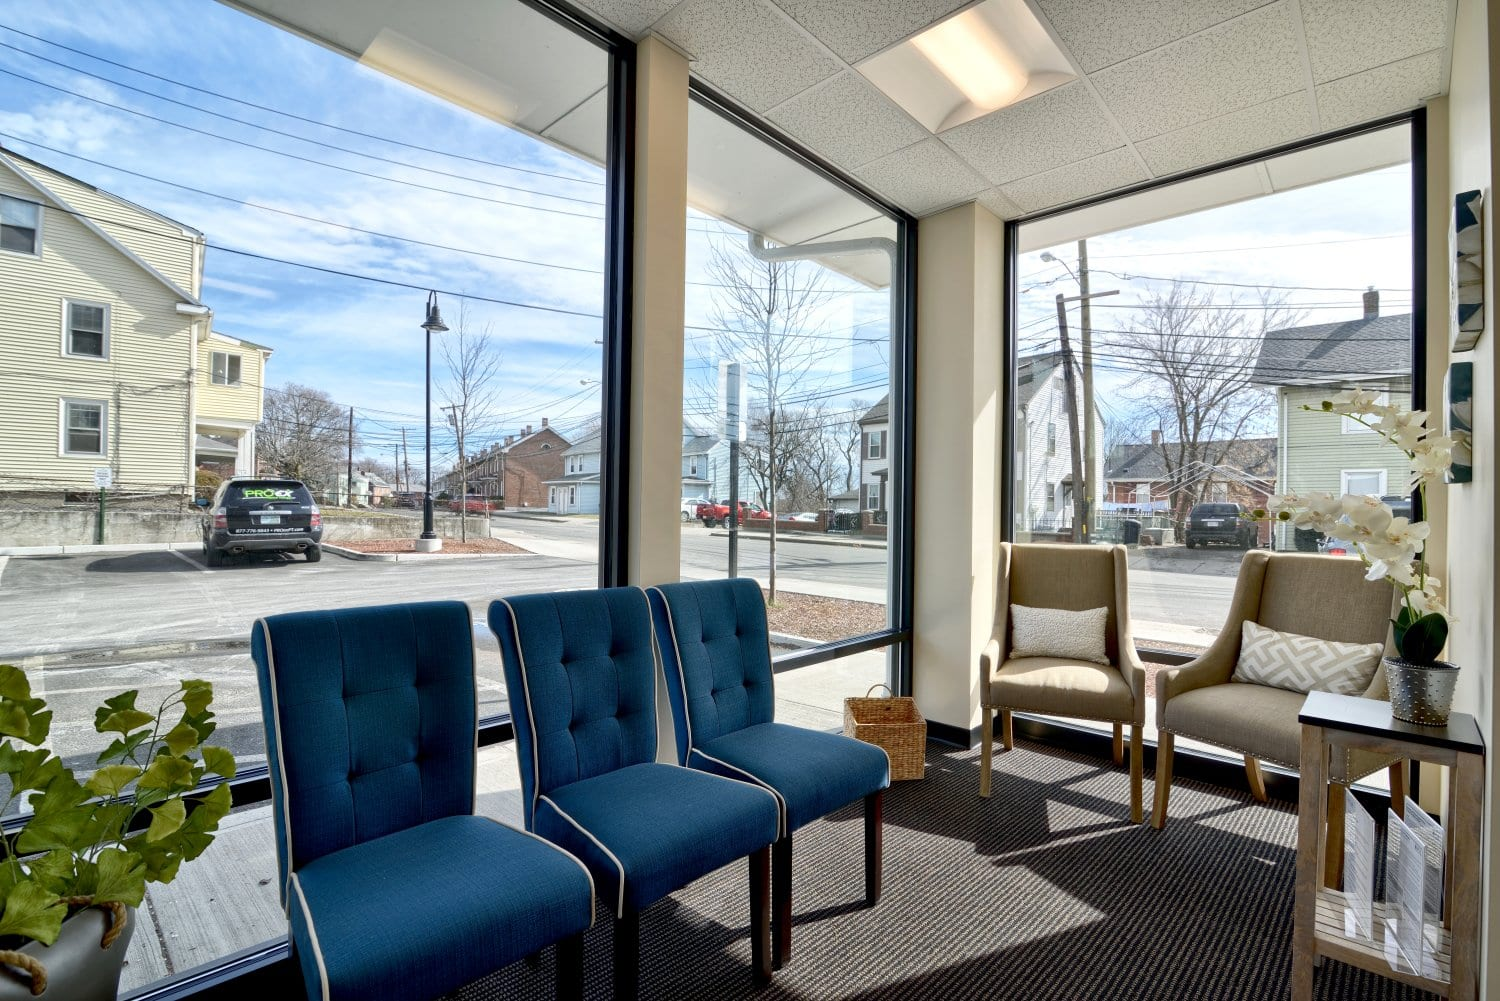 An image of the patient waiting area at our physical therapy clinic in Waltham, Massachusetts.